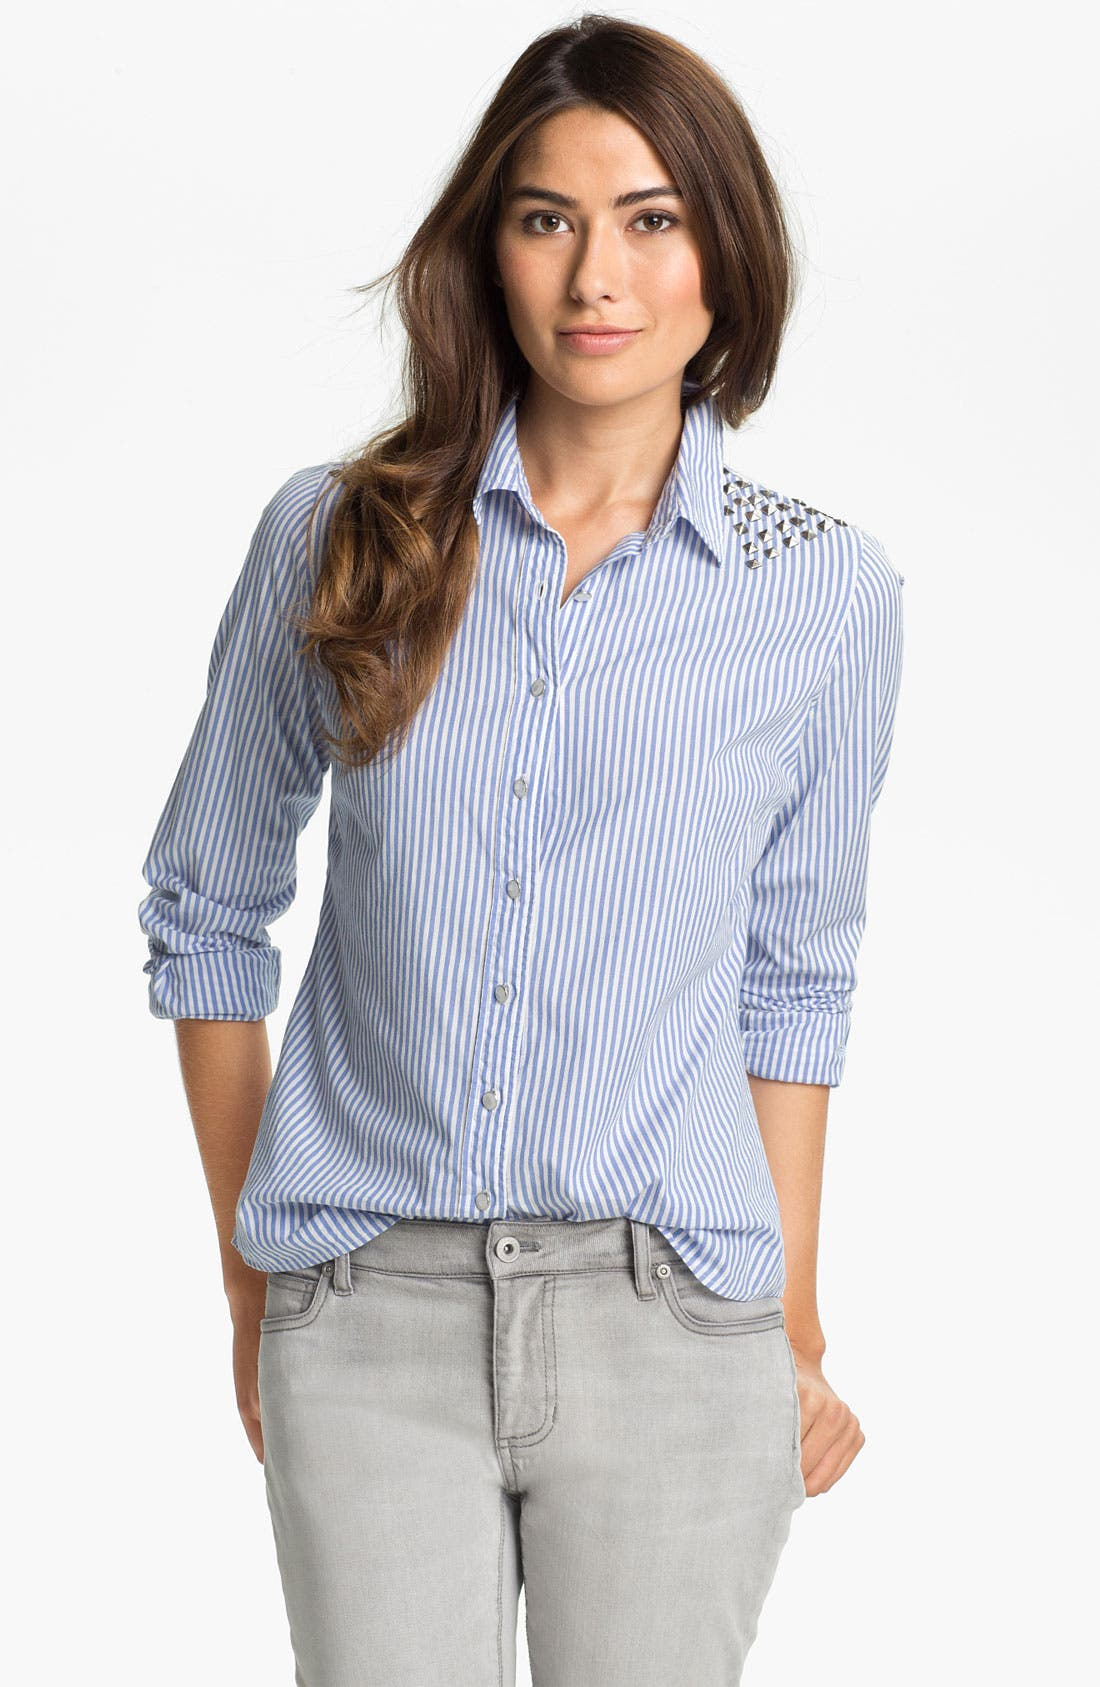 Alternate Image 1 Selected - Two by Vince Camuto Studded Stripe Shirt